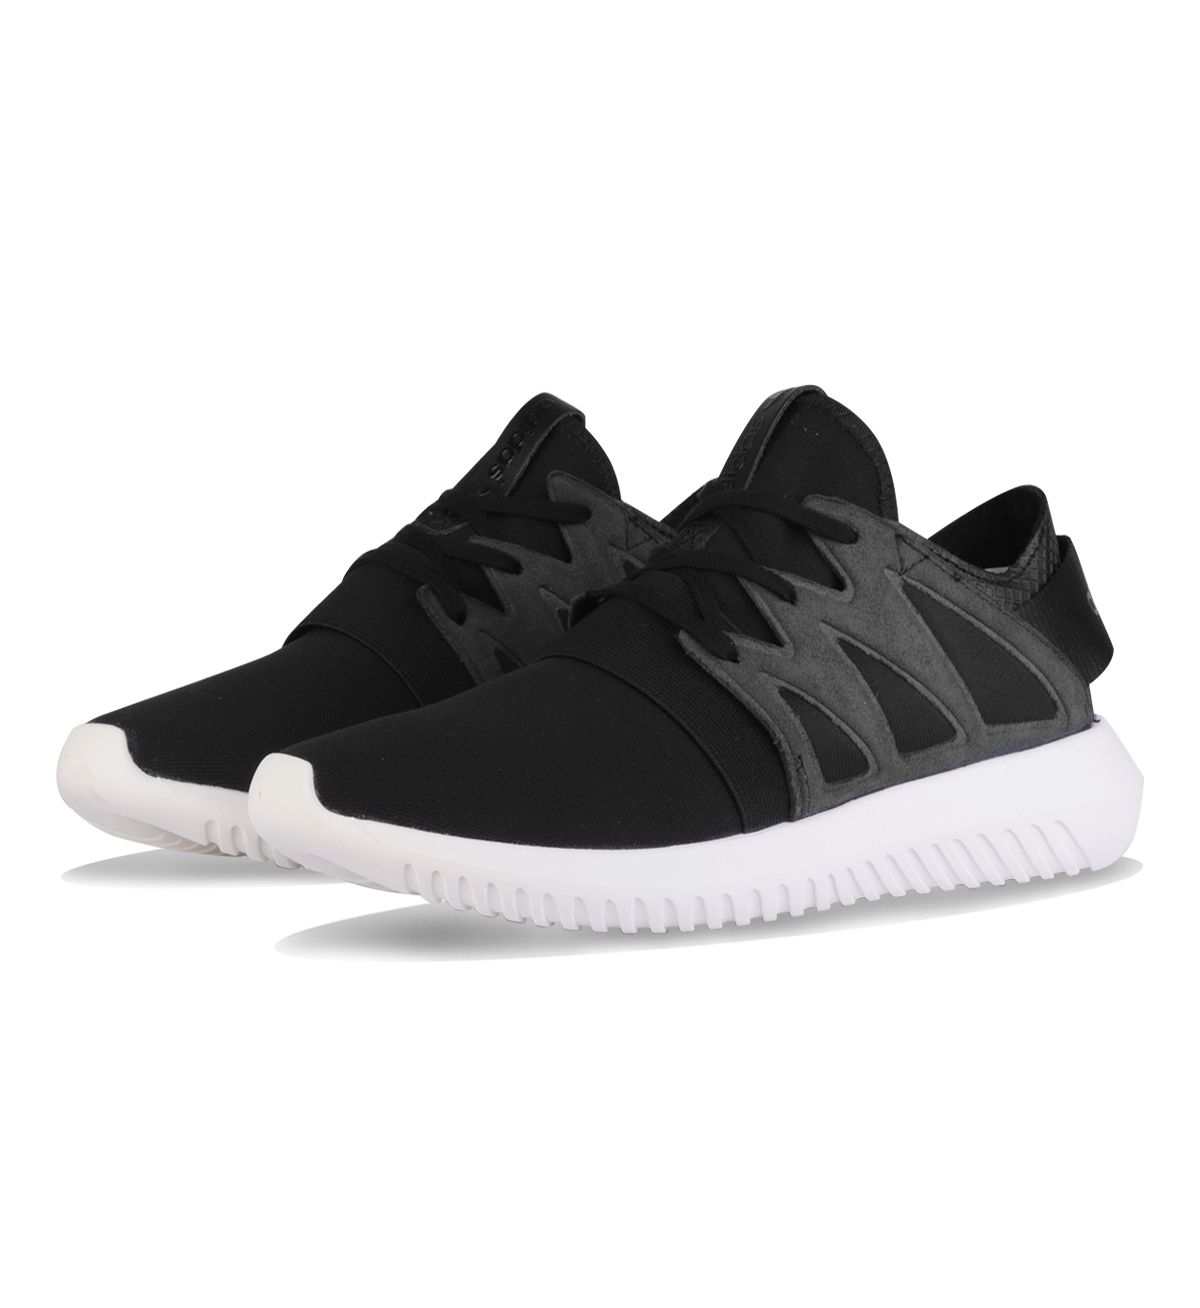 Adidas Originals WMNS Tubular Viral Core Black / Off White - Adidas Womens